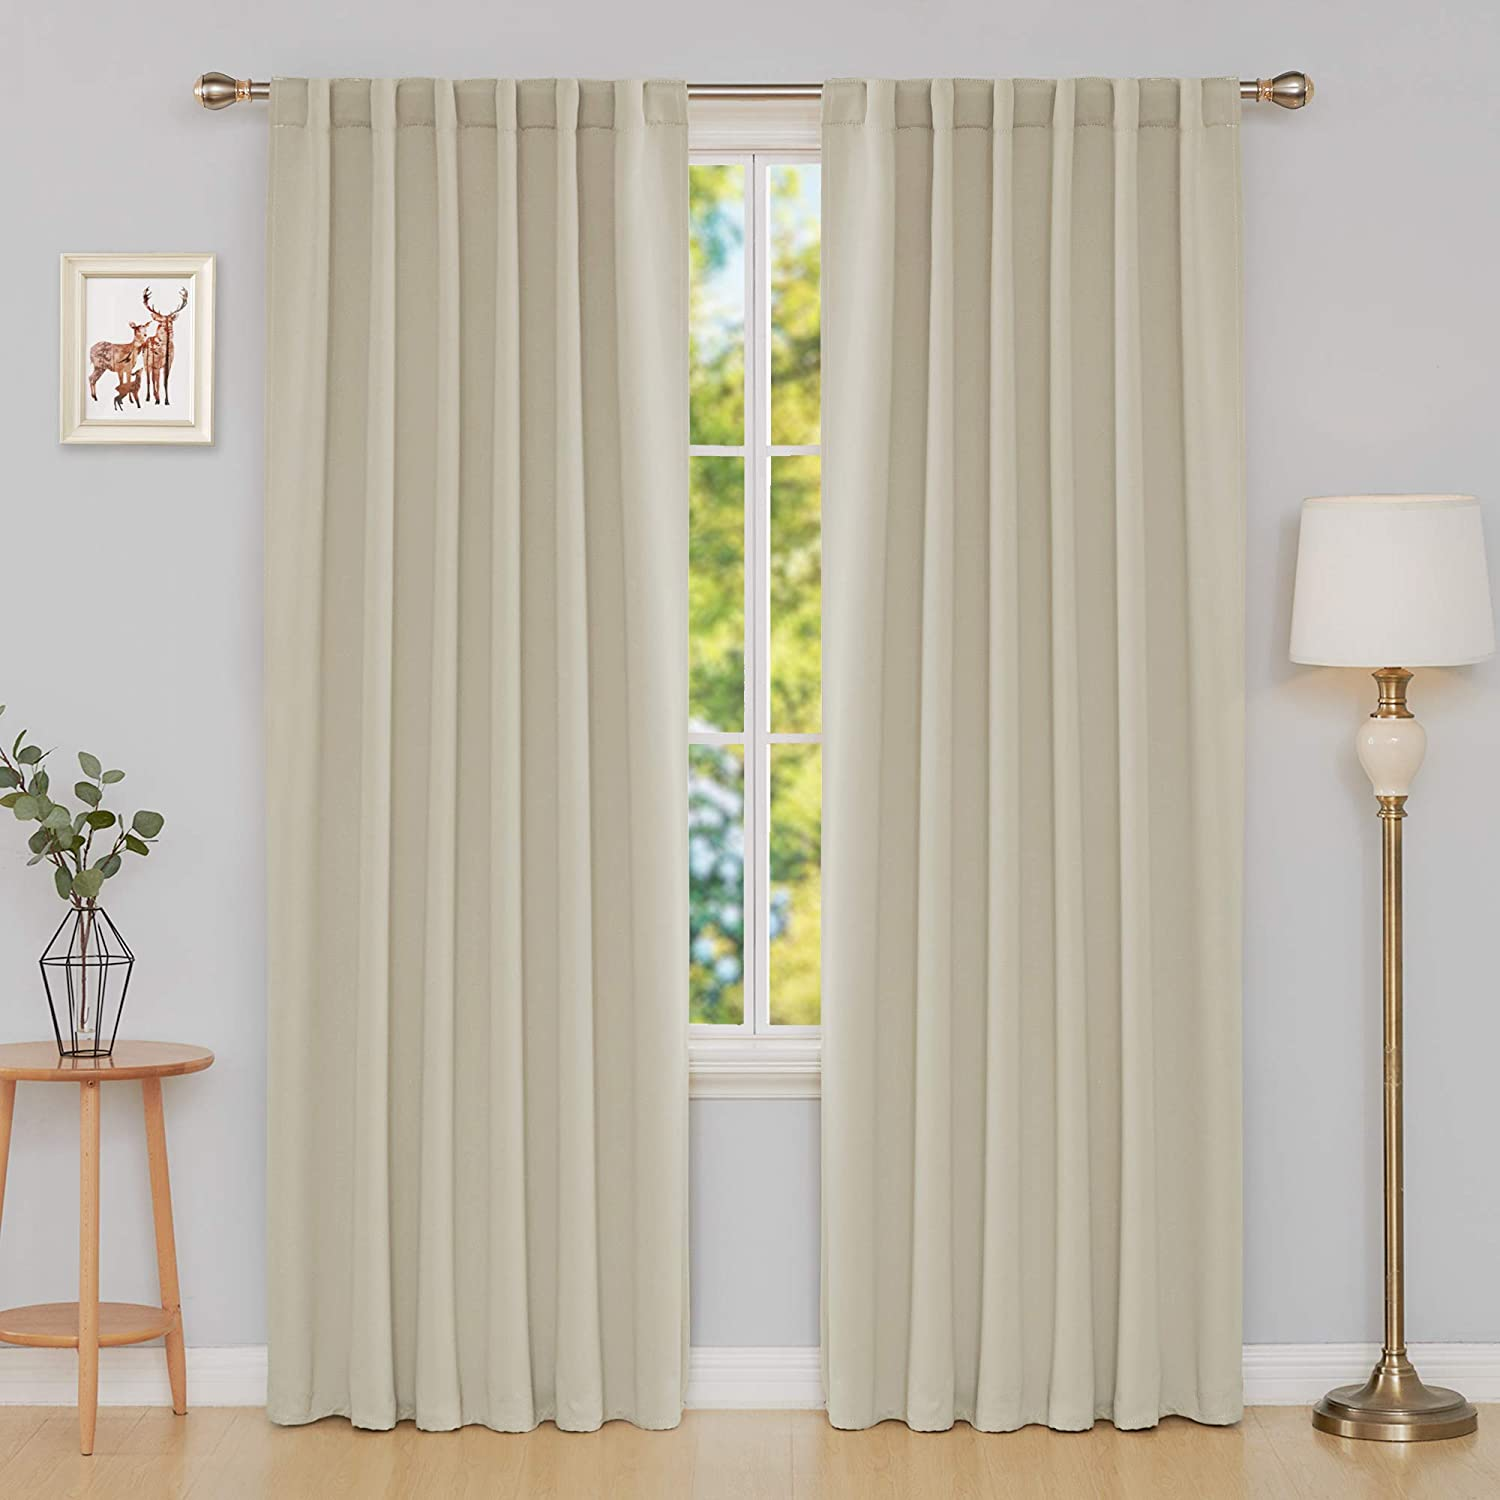 deconovo blackout curtains back tab and rod pocket thermal insulated curtain penels for sliding door 52x108 inch greyish white 2 panels